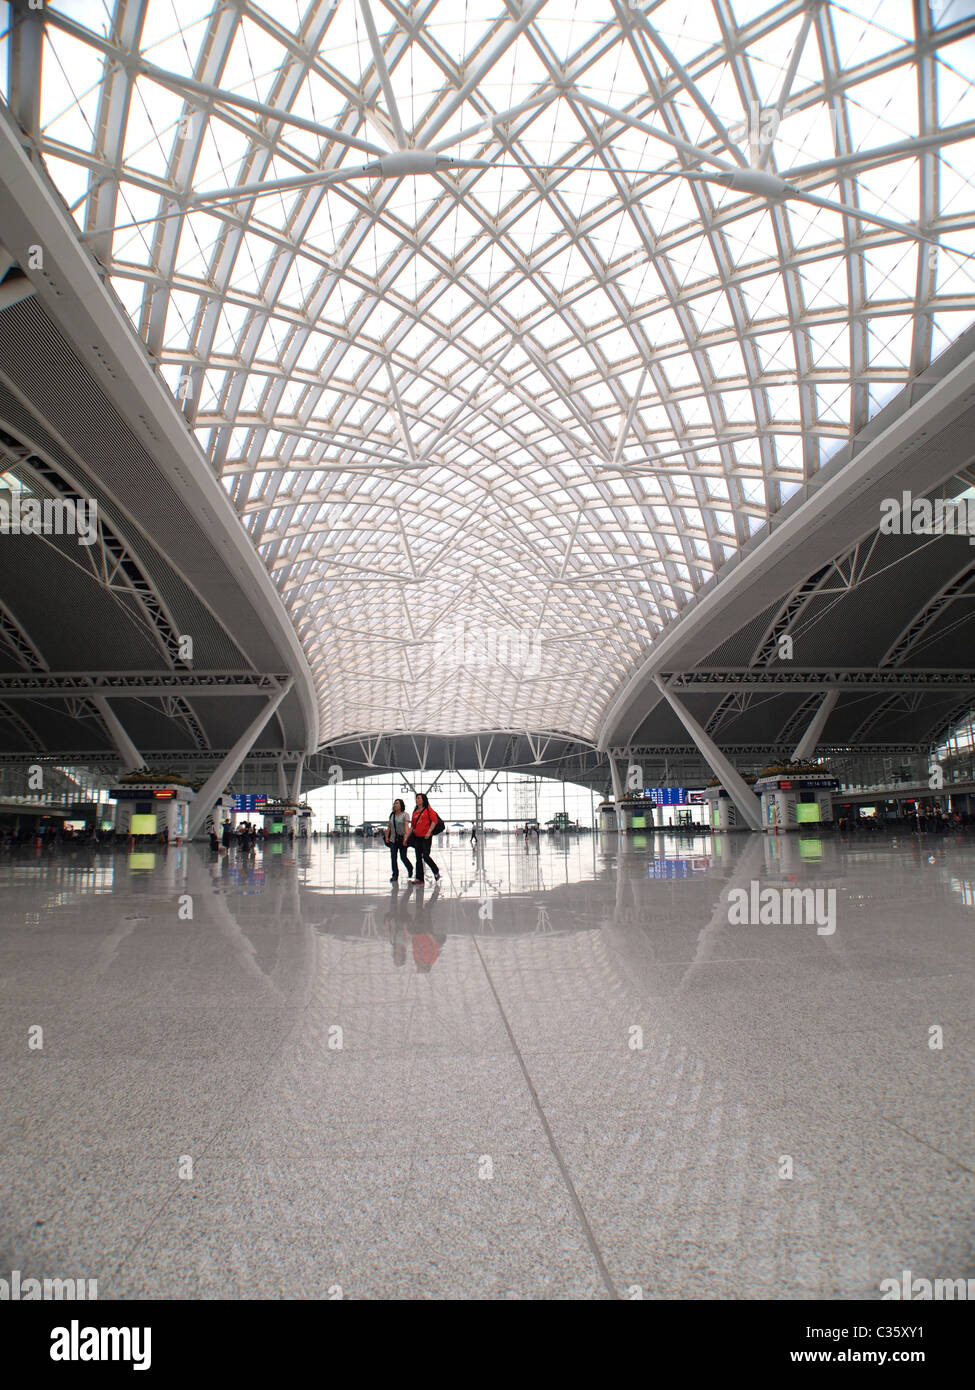 Modern Architecture at Railway Station in Guangdong - Stock Image